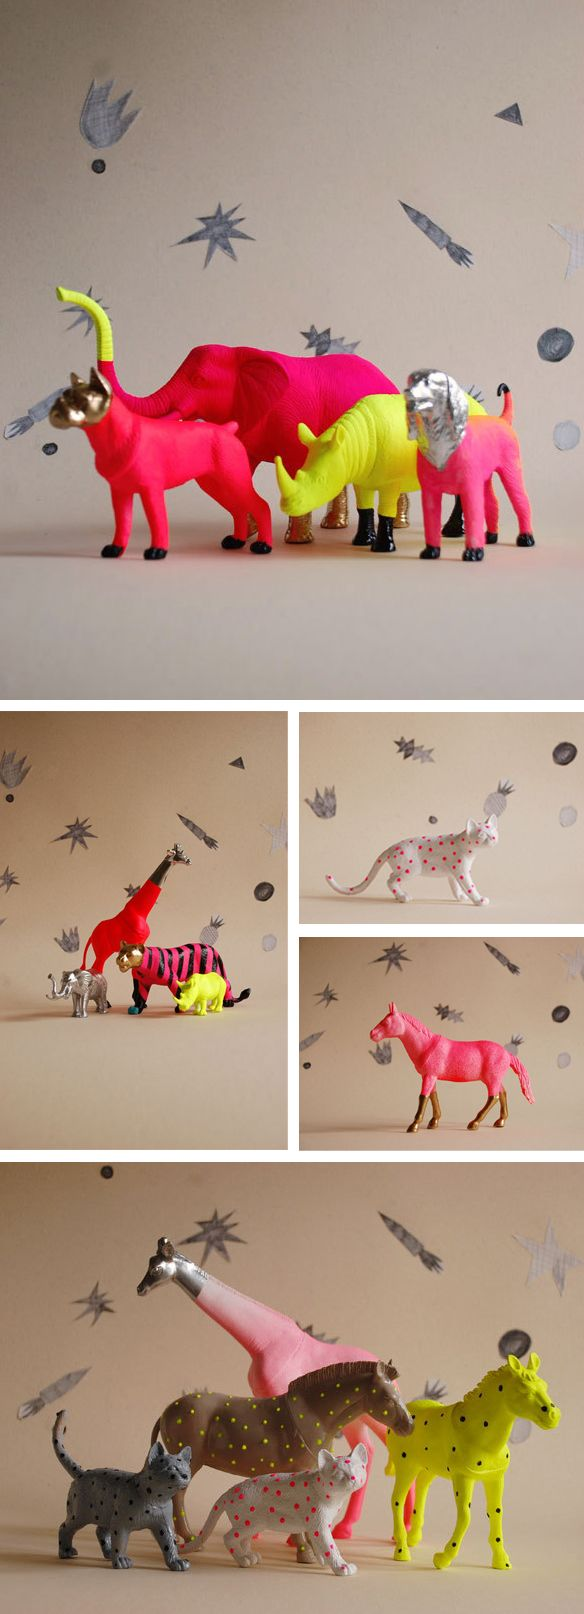 Painted party animals